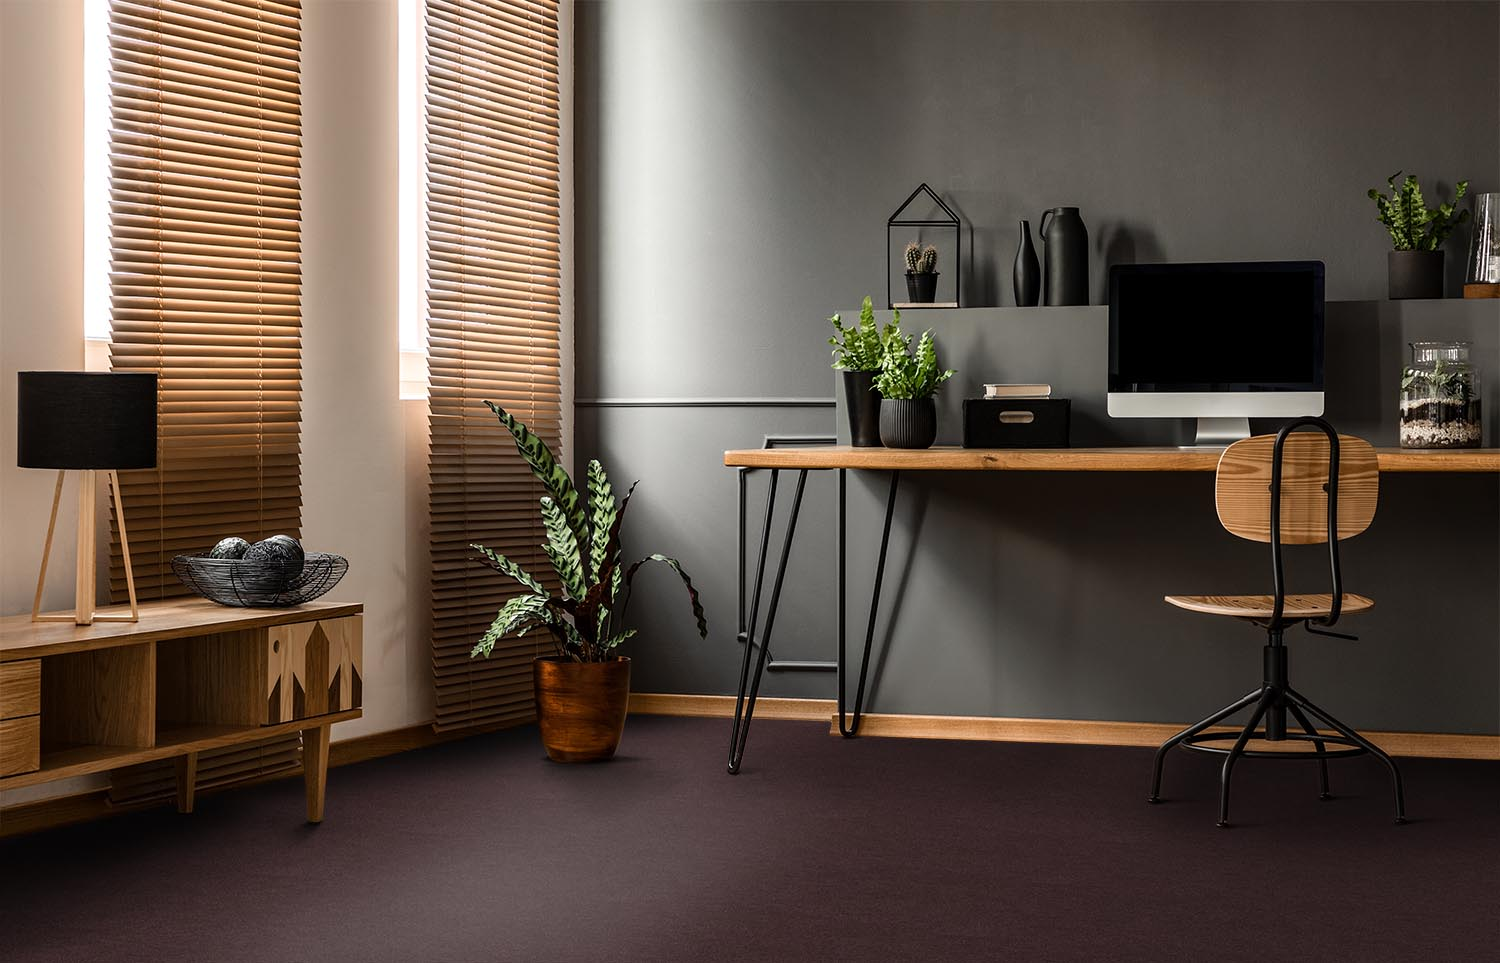 Softology - S201 - Swoon home office